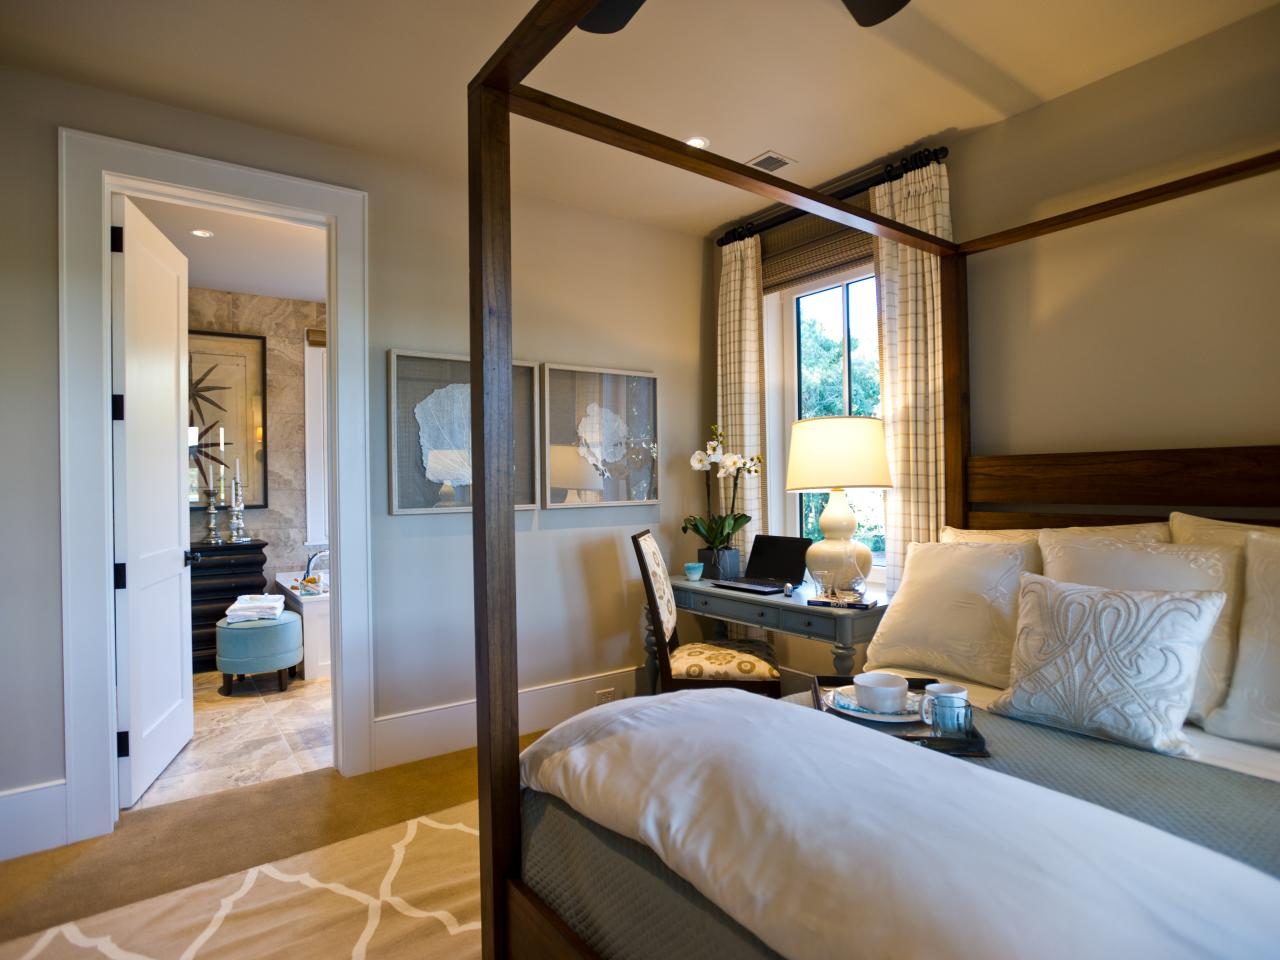 Within Easy Reach Of The Master Suite Bathroom This Haven For Rest And Relaxation Boasts Side